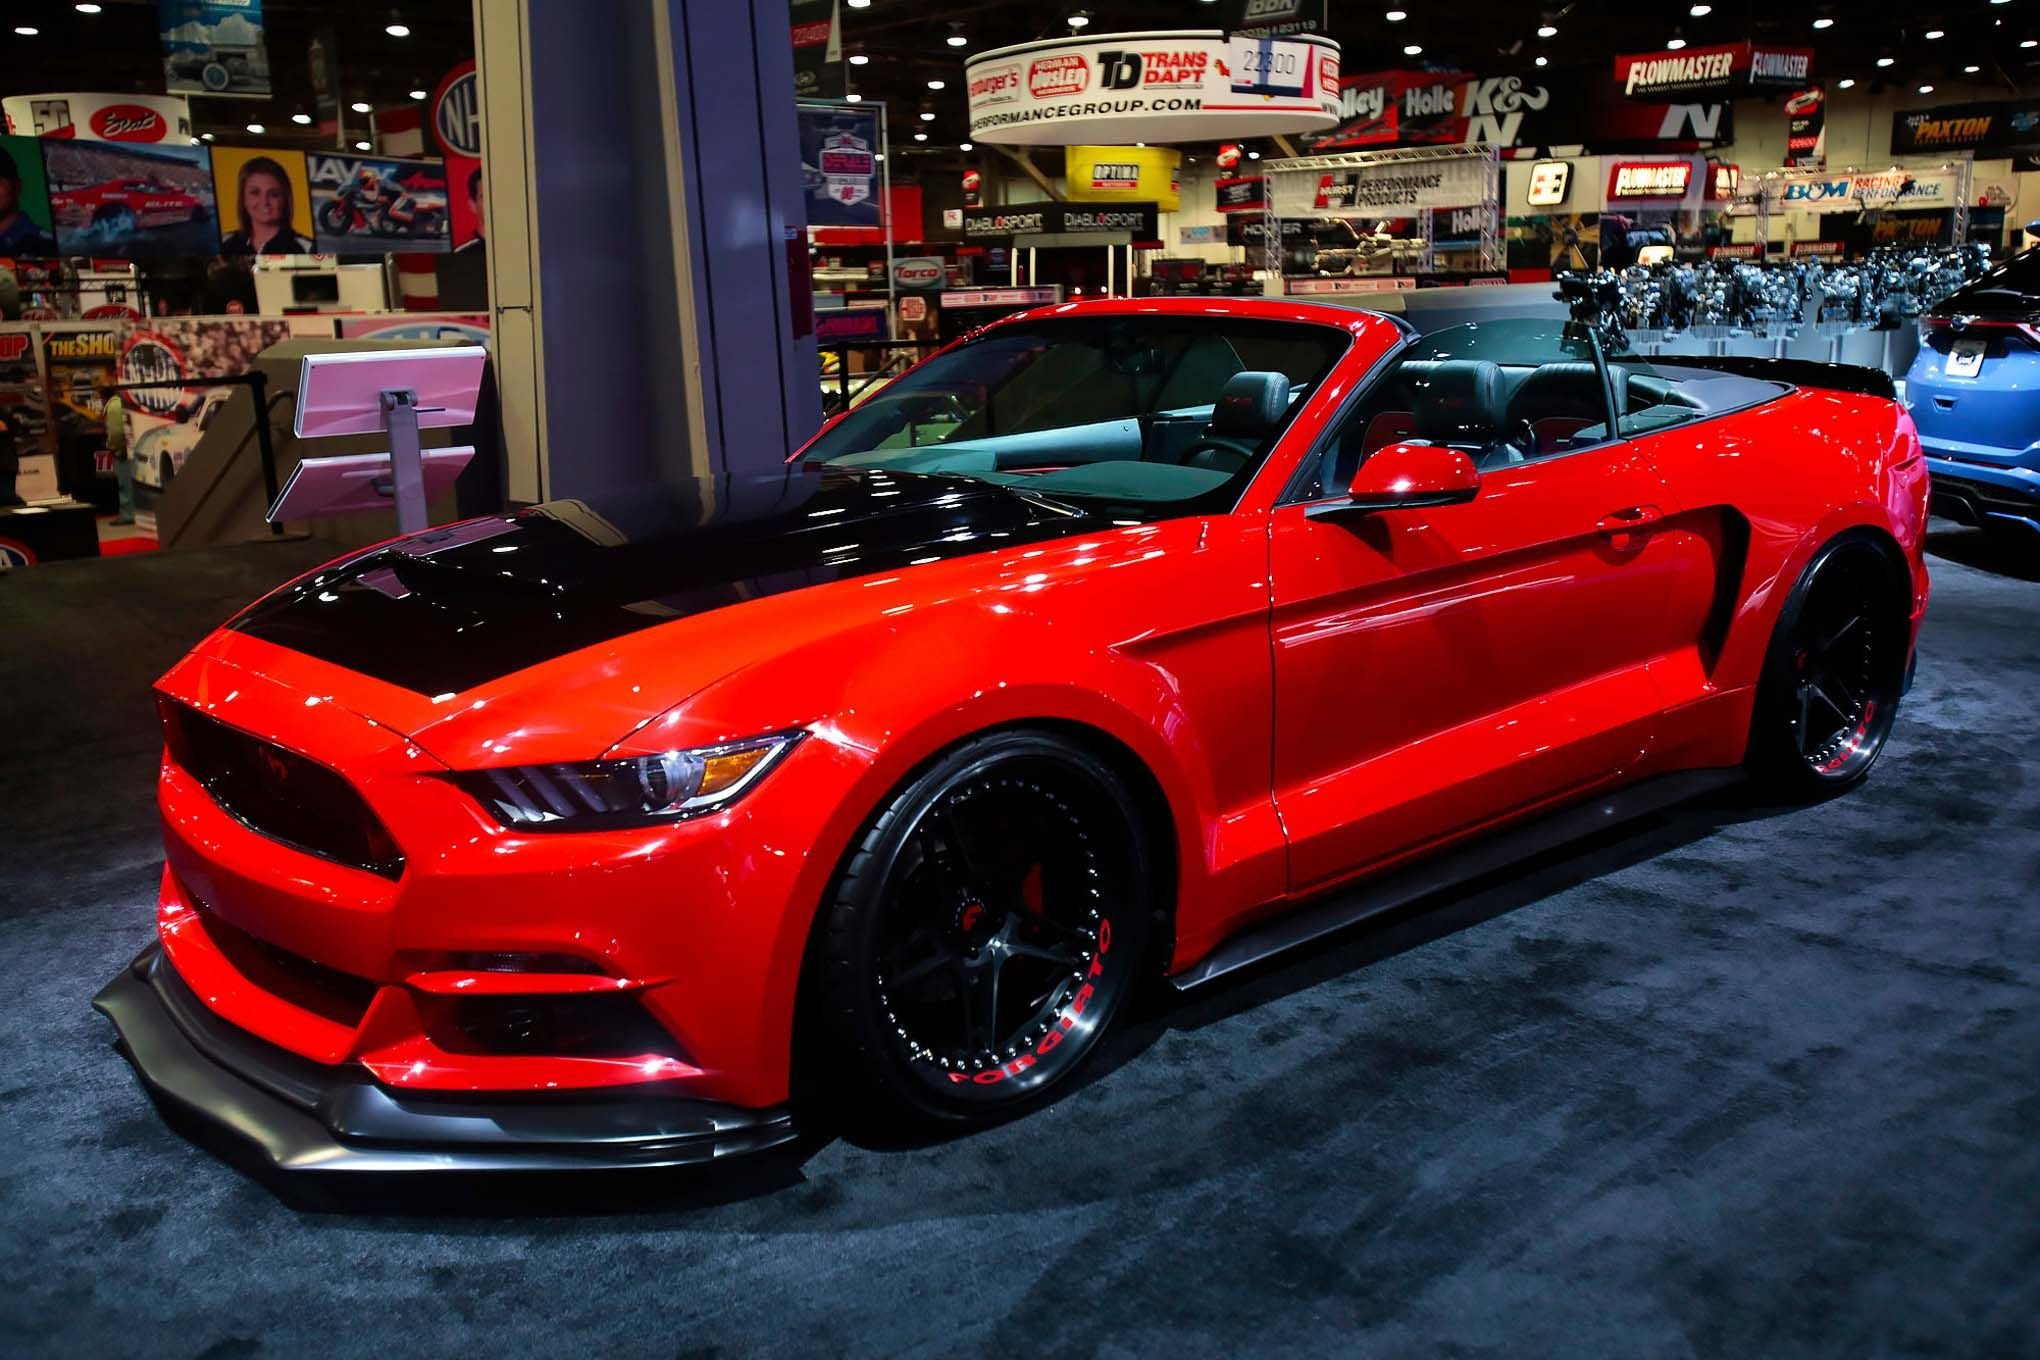 sema show 2015 cars modified custom tuning las vegas wallpaper 2040x1360 829099 wallpaperup. Black Bedroom Furniture Sets. Home Design Ideas